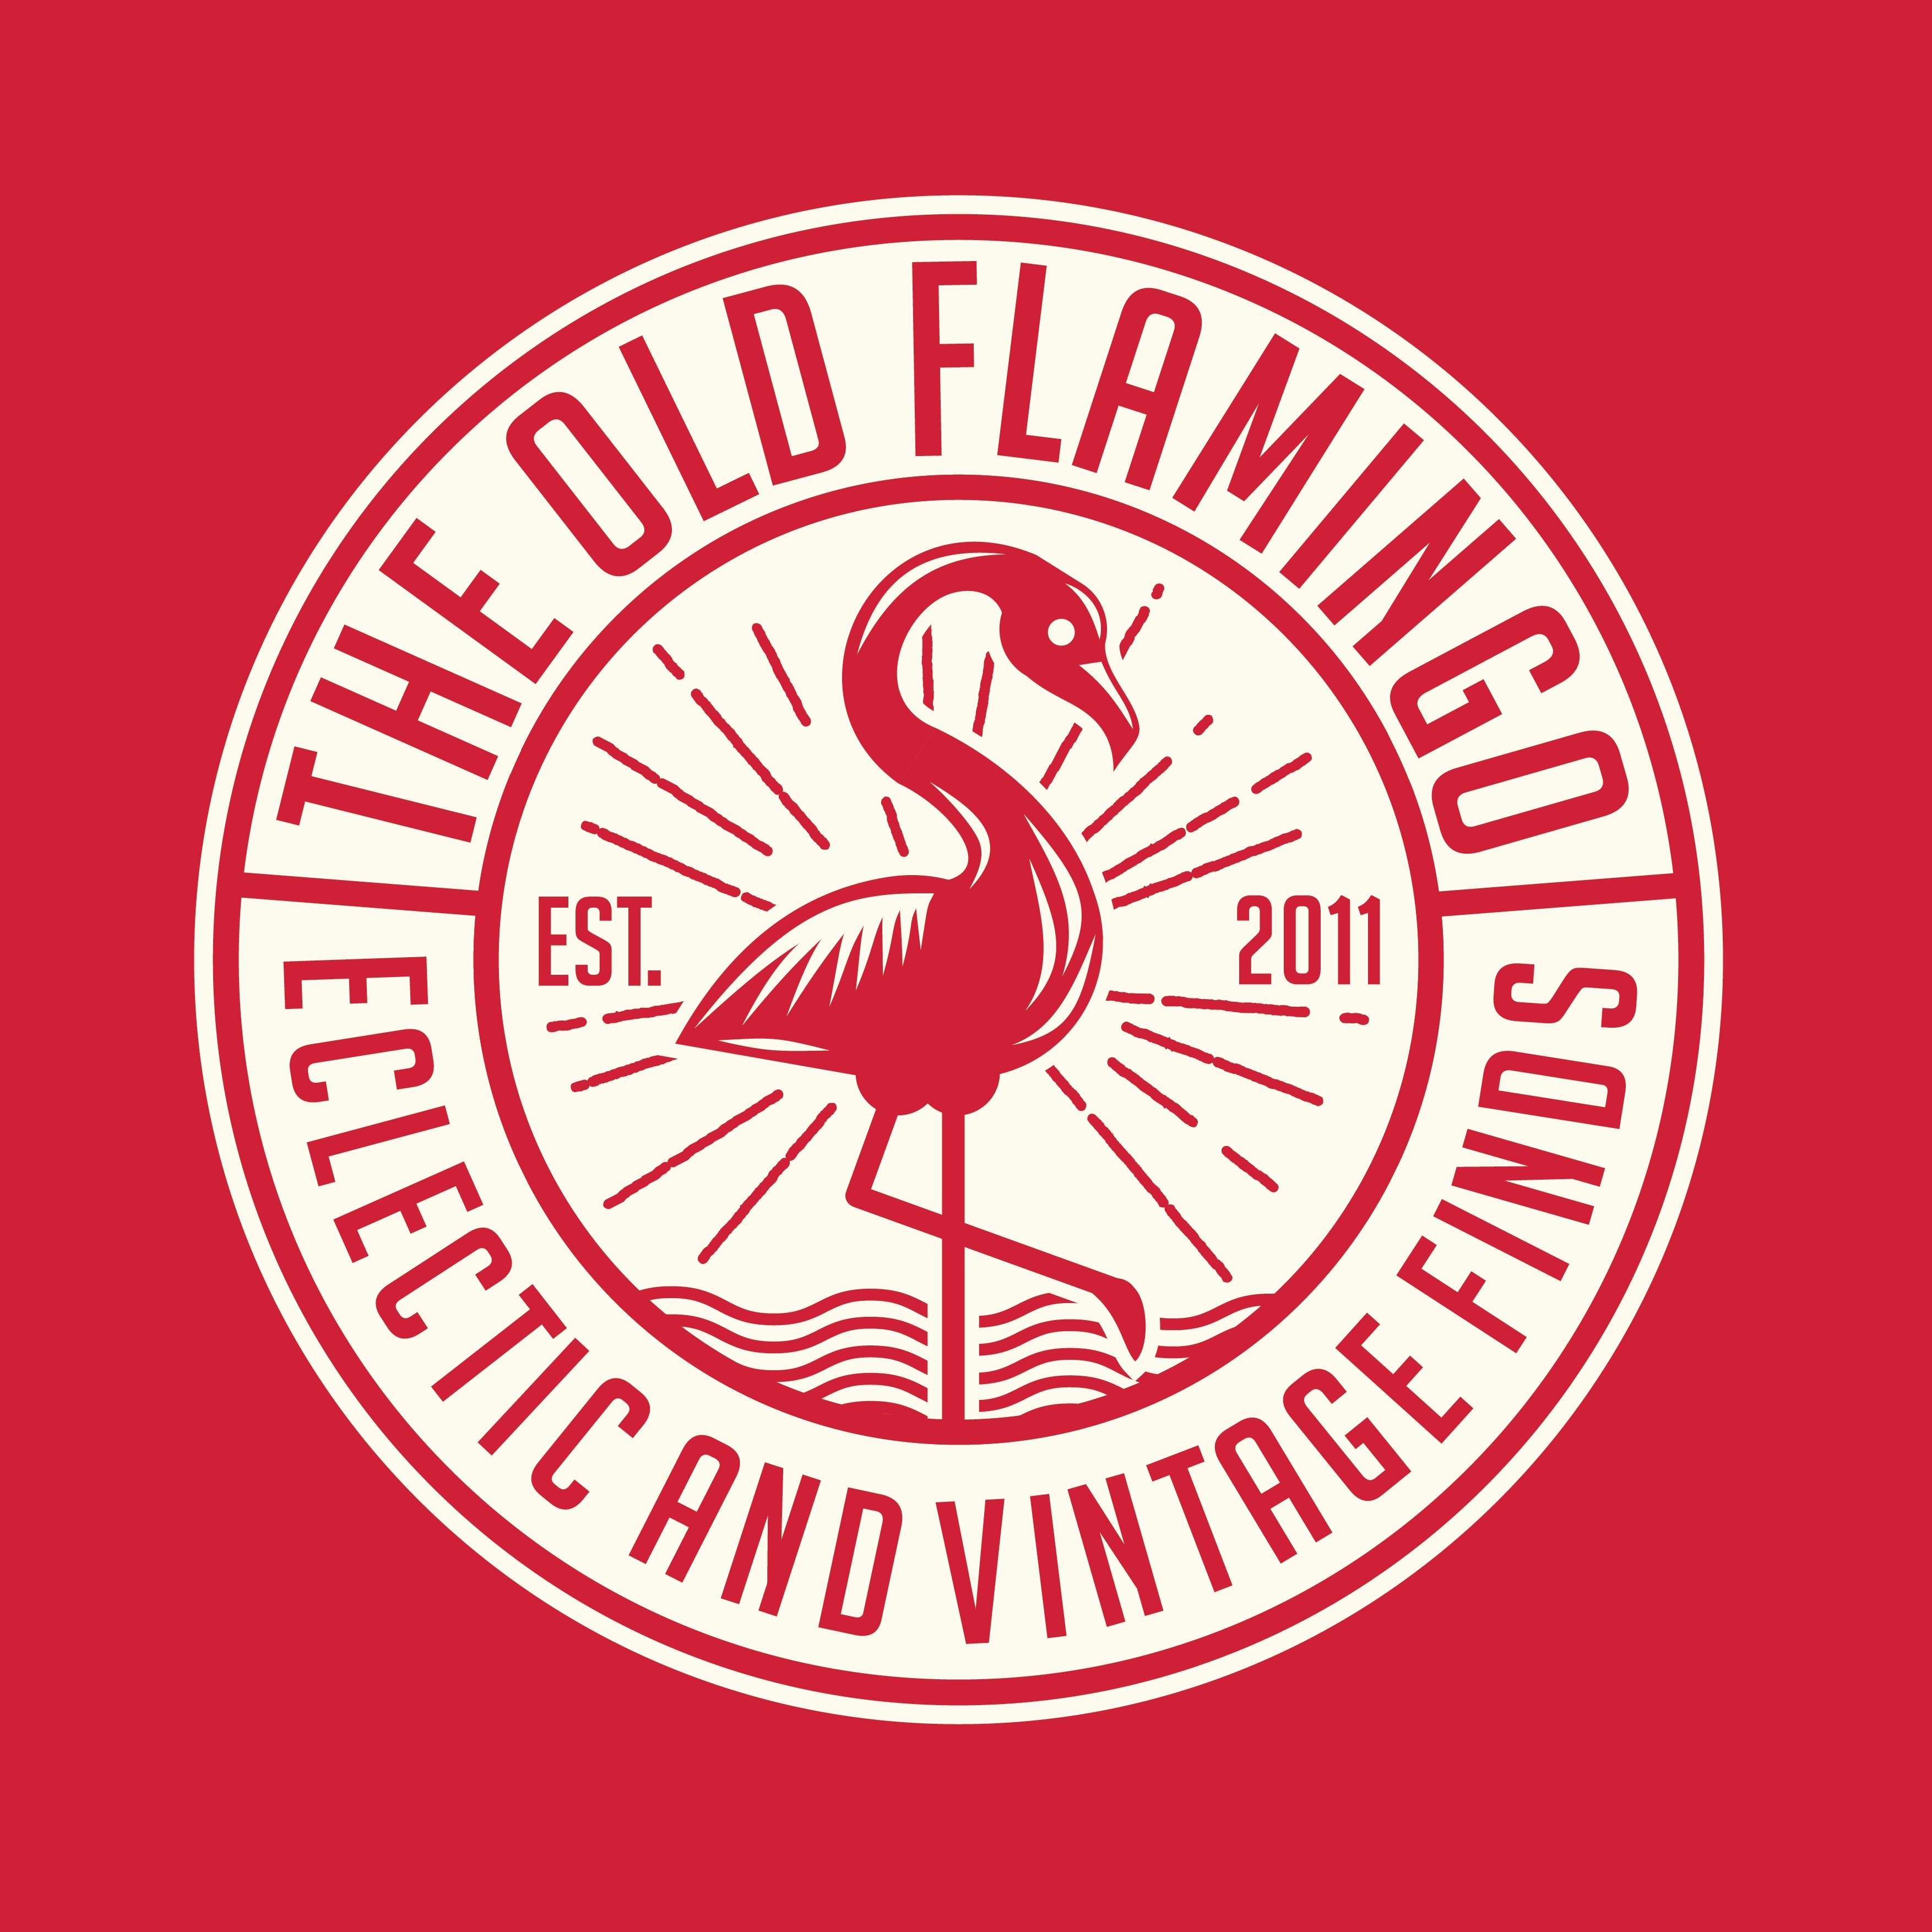 Create hip logo for THE OLD FLAMINGO that specializes in eclectic, vintage, upcycled furniture finds